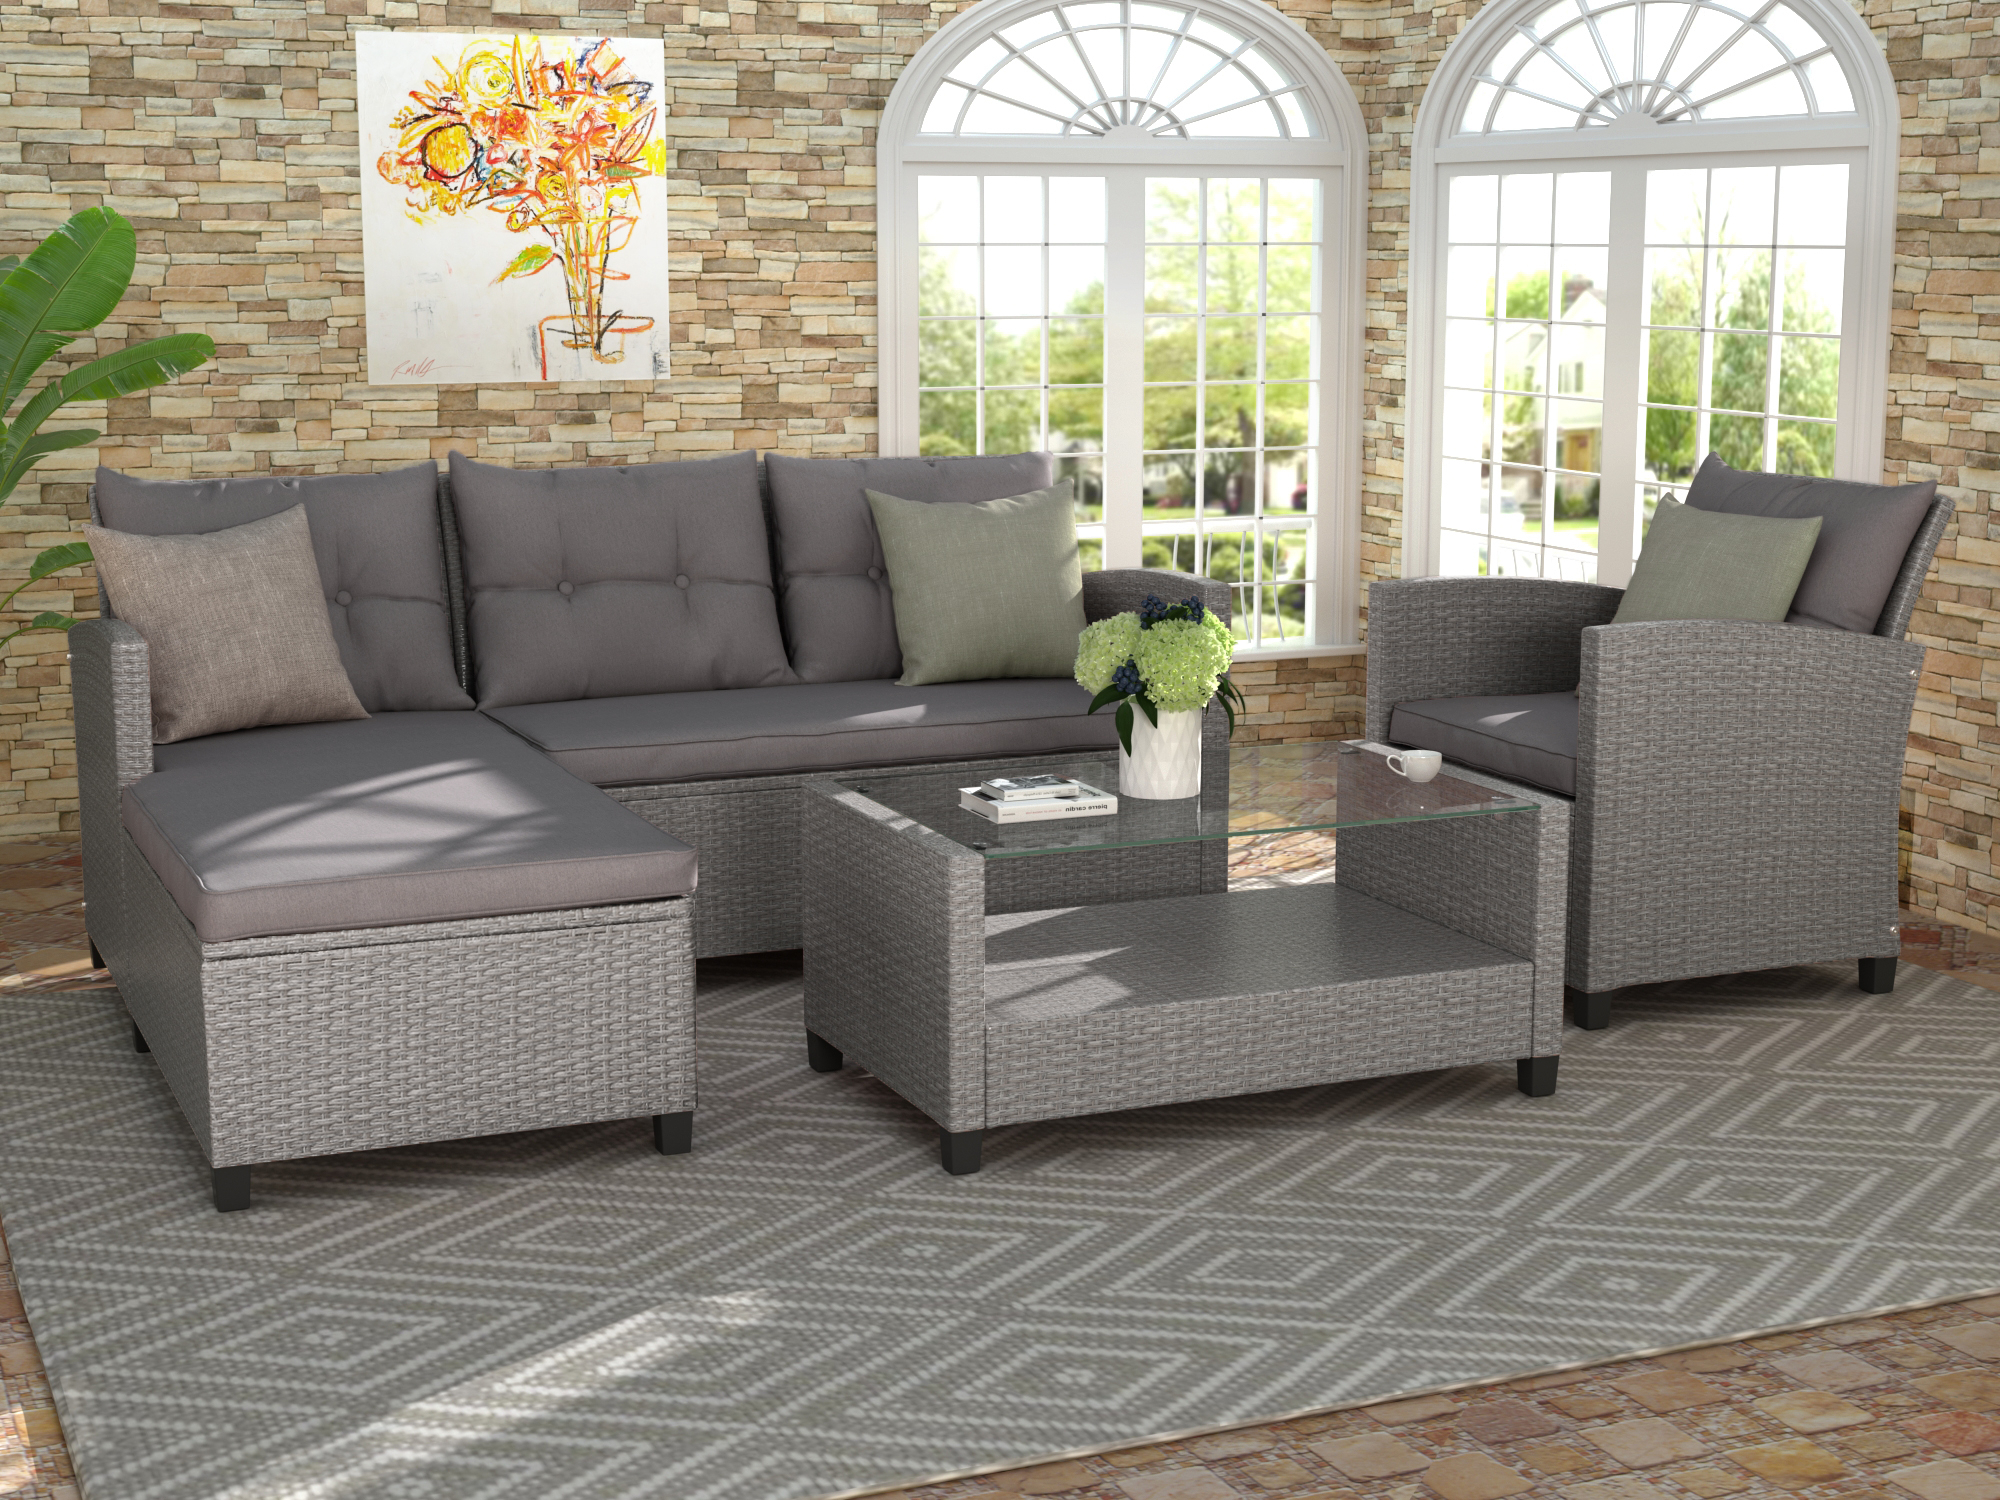 Clearance! Rattan Patio Sofa Set, 4 Pieces Outdoor Within Outdoor Sofa Chairs (View 8 of 15)